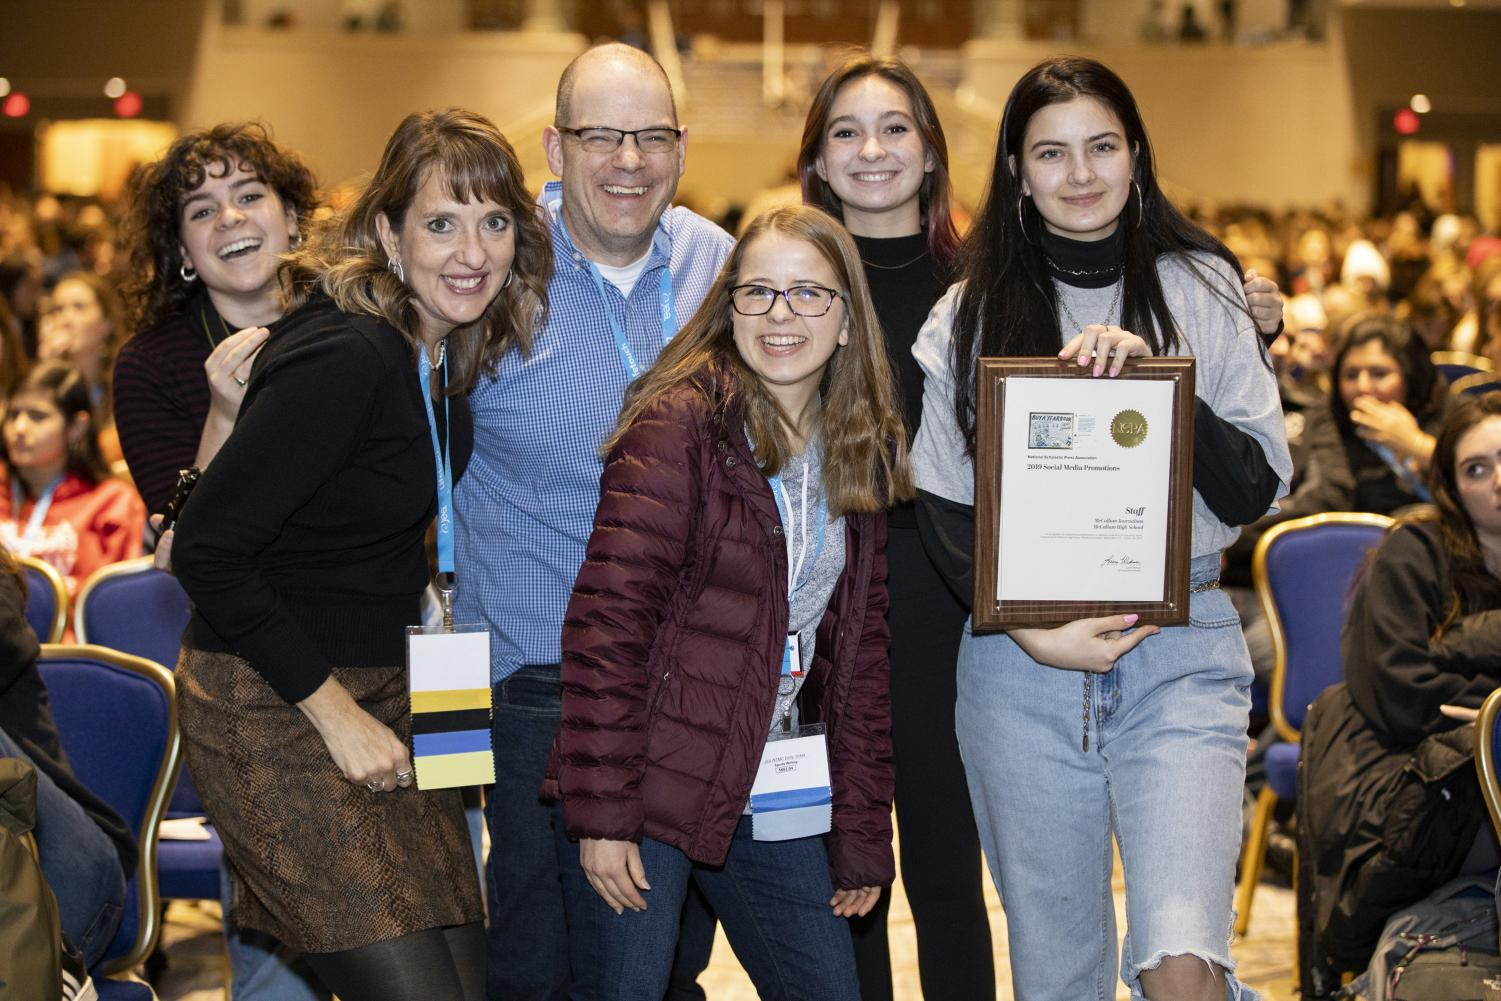 Junior Shield visuals editor and social media coordinator Bella Russo, NSPA board member and ILPC director Jeanne Acton, adviser Dave Winter and seniors, Shield co-editor in chief Kristen Tibbetts, Knight editor in chief Mira MacLaurin and Shield copy editor Alex Dowd, pose with the NSPA Best of Use of Social Media Promotion, one of two first place national awards the MacJournalism social media accounts earned at the DC convention. The other first place award was for best reporting. Photo by Mitchell Franz/NSPA.